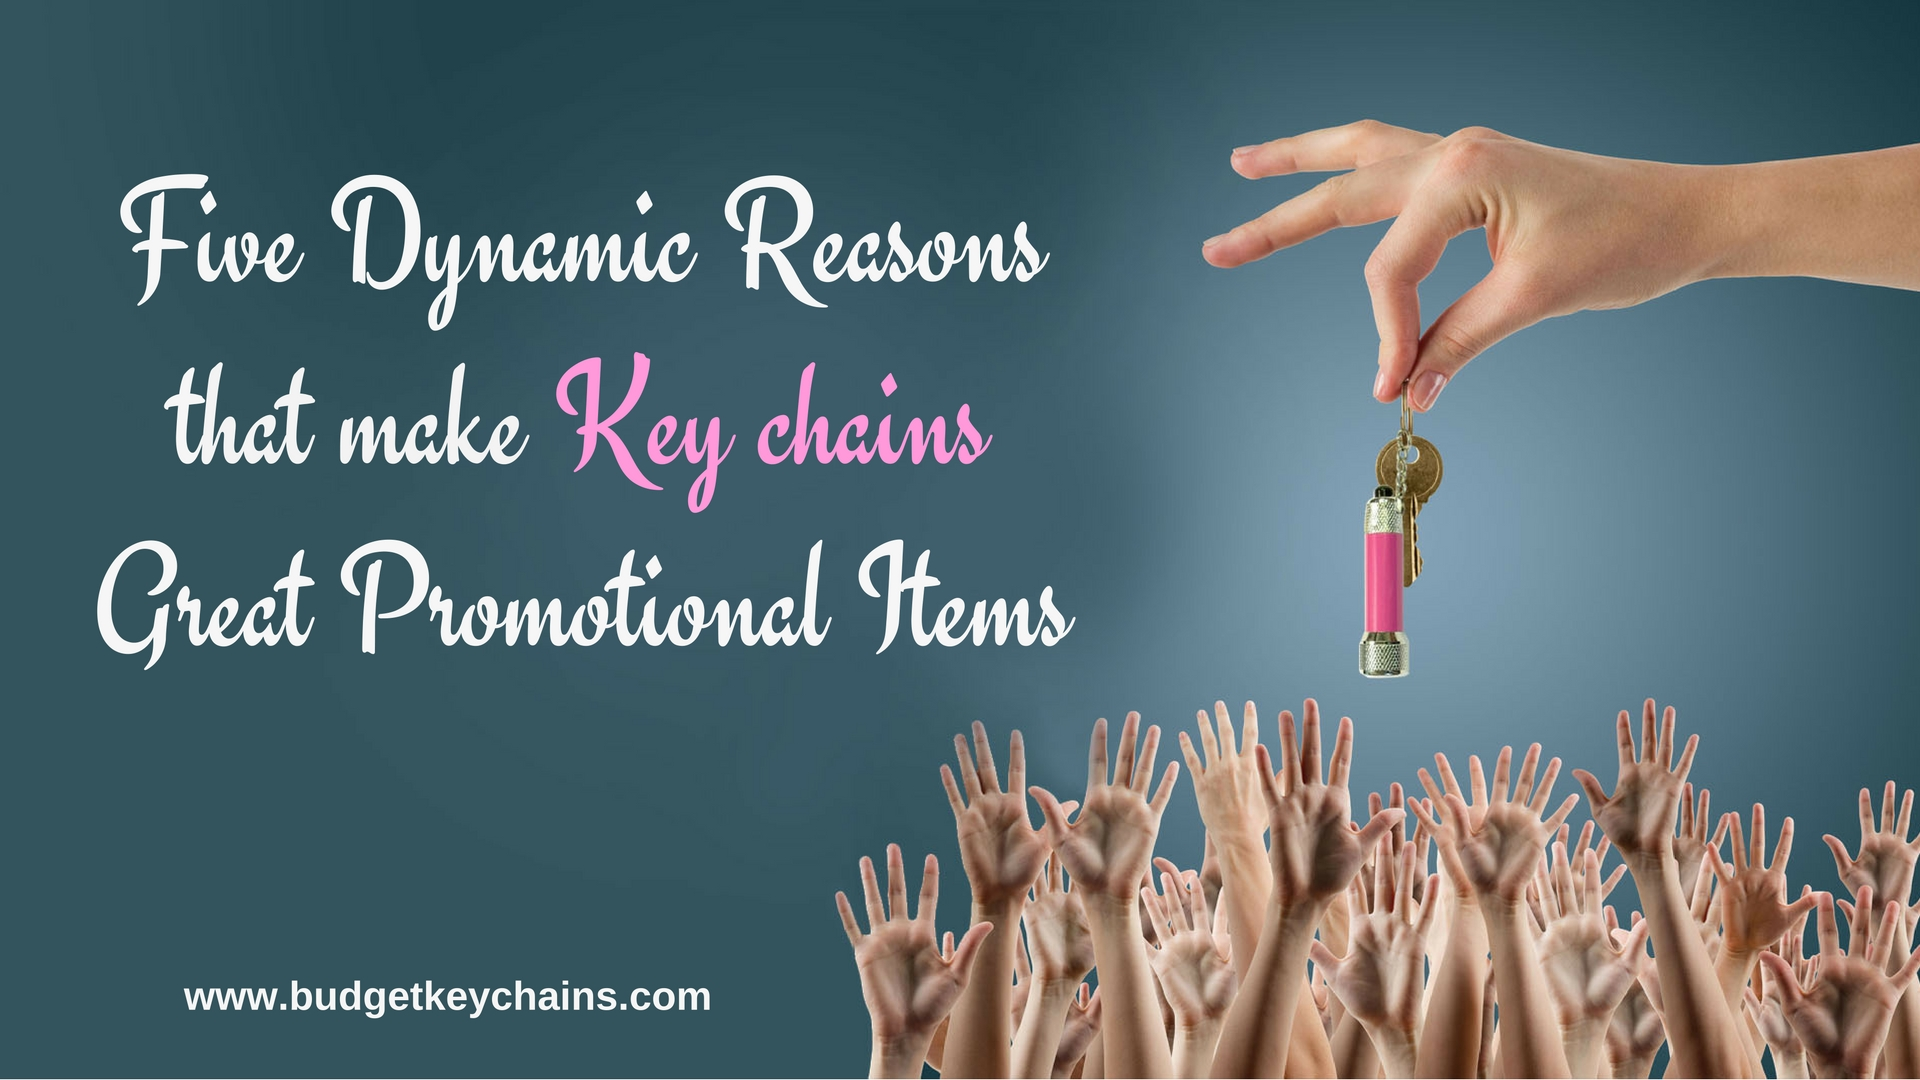 keychains-great-promotional-items